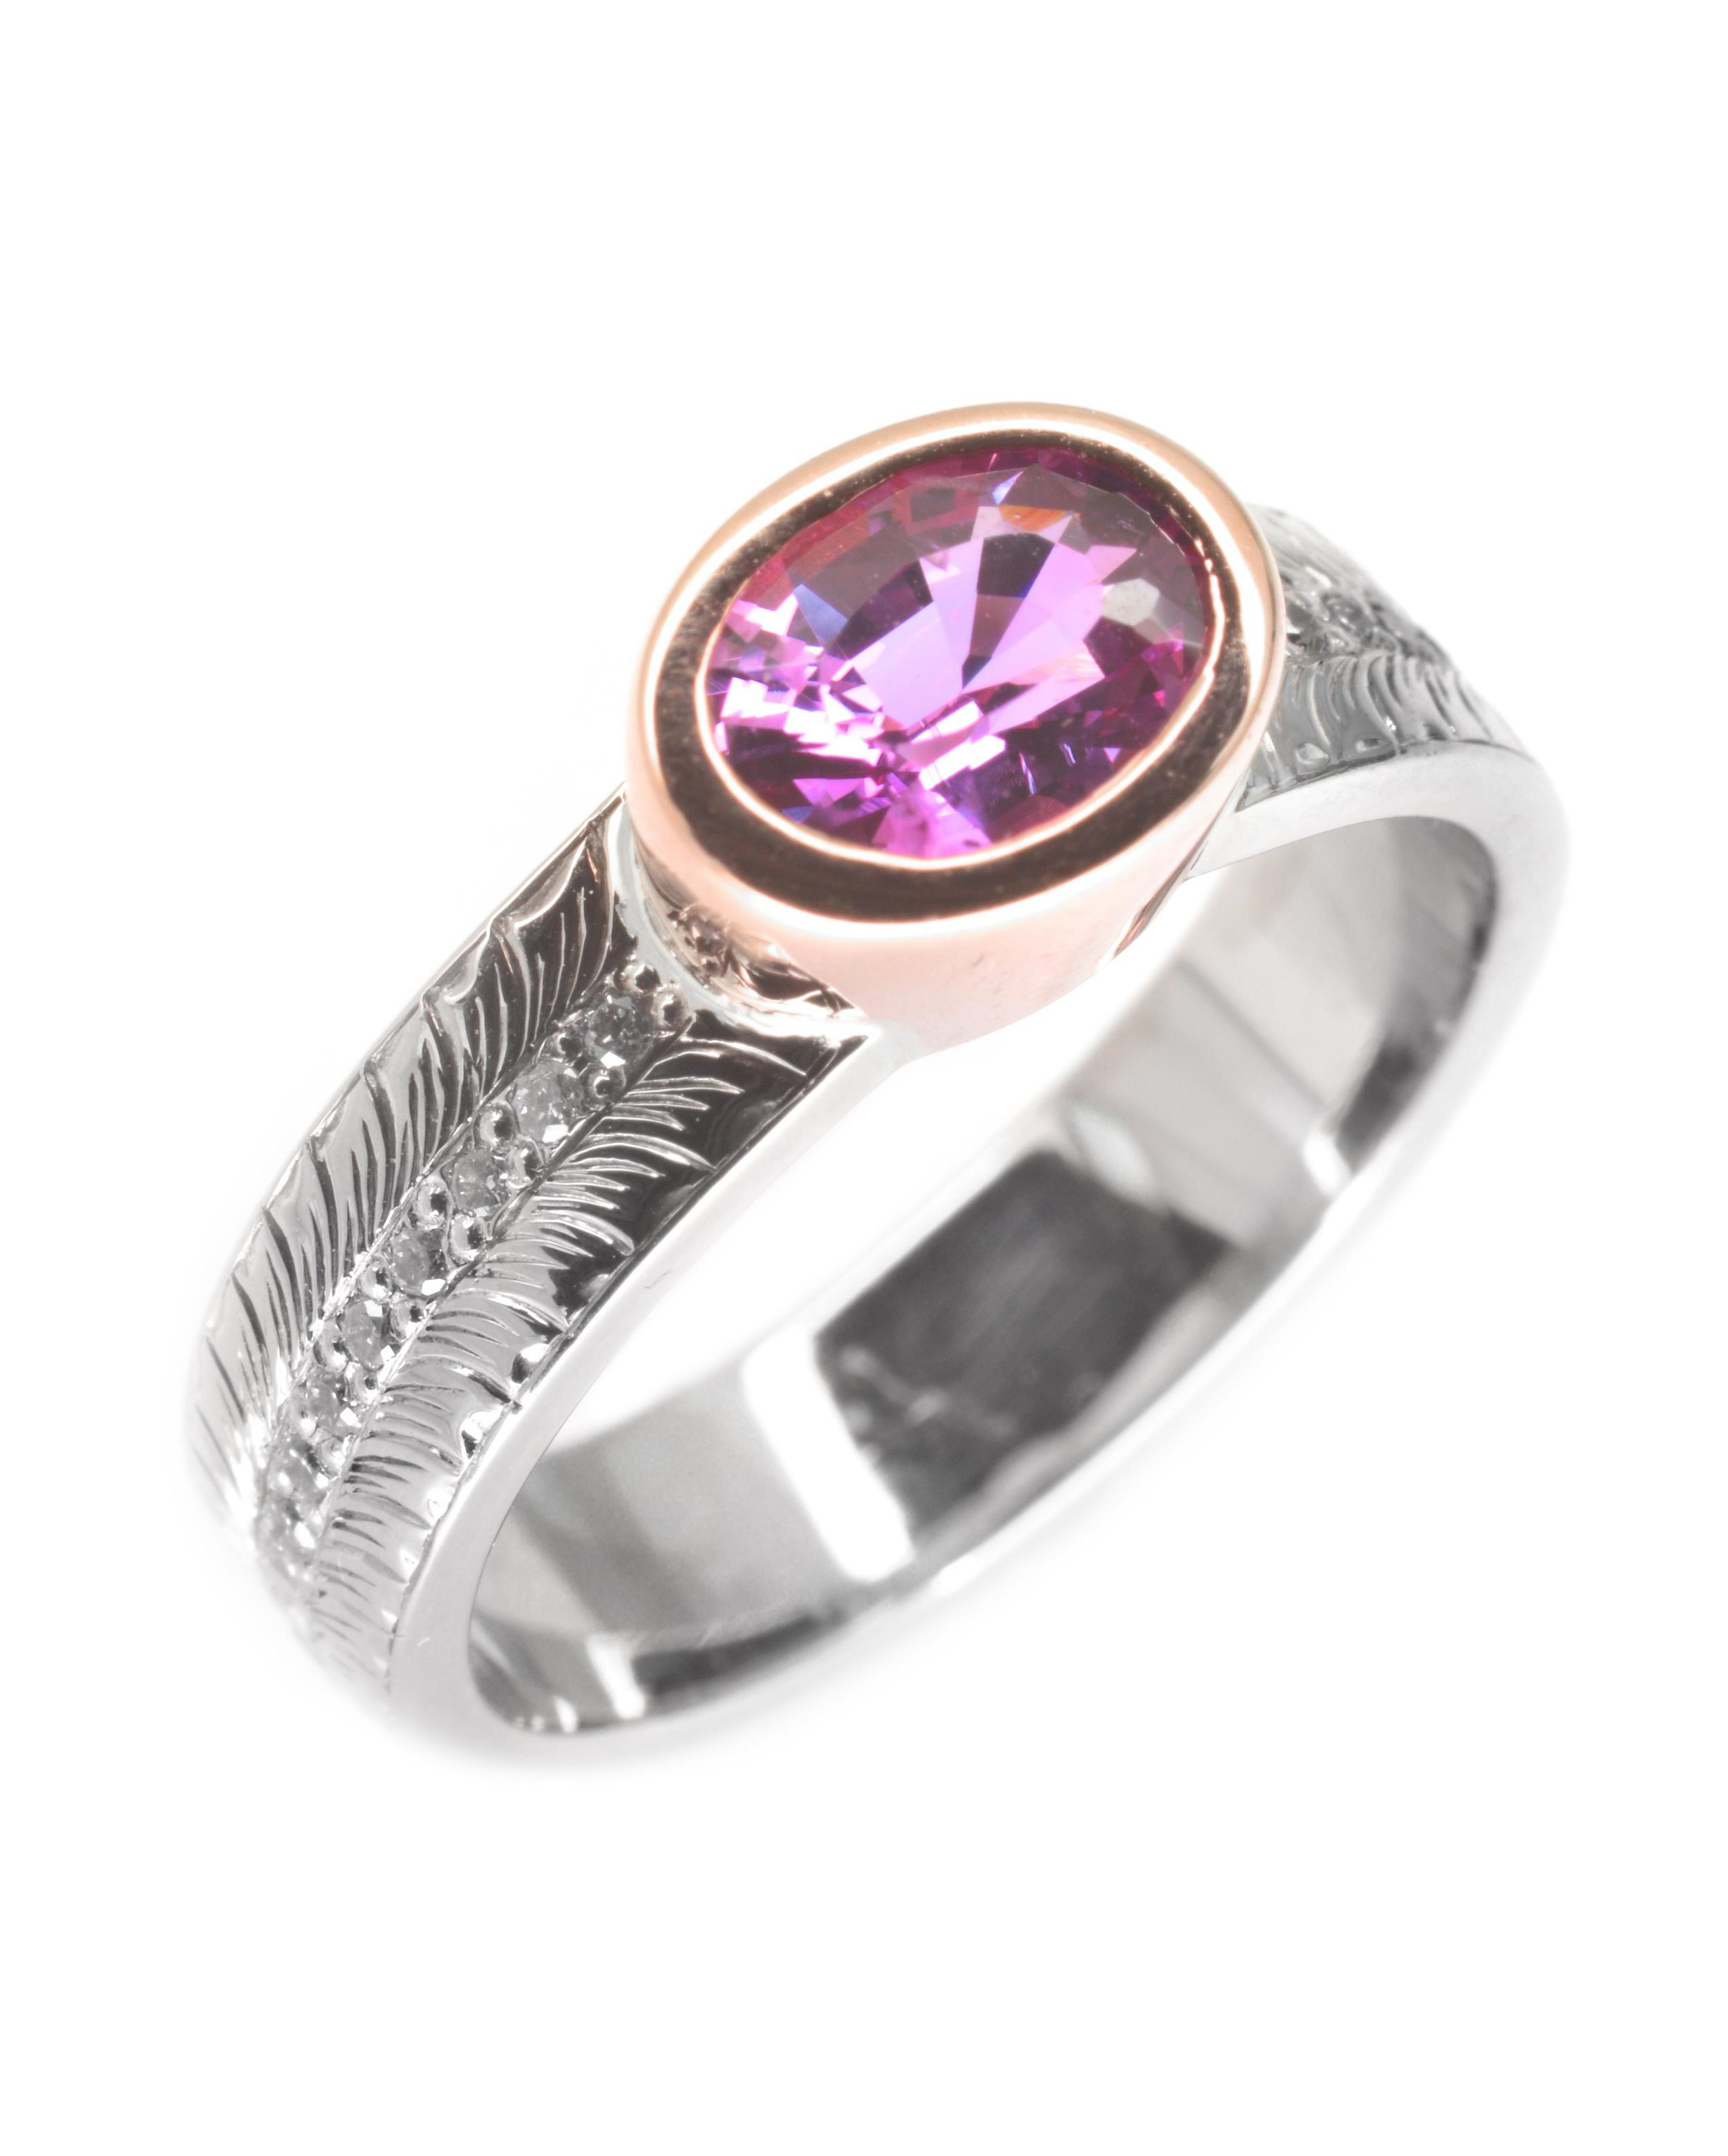 14k white and rose gold ring set with a pink spinel with hand engraving, designed by Jason Baskin and engraving by Darren Demarco.